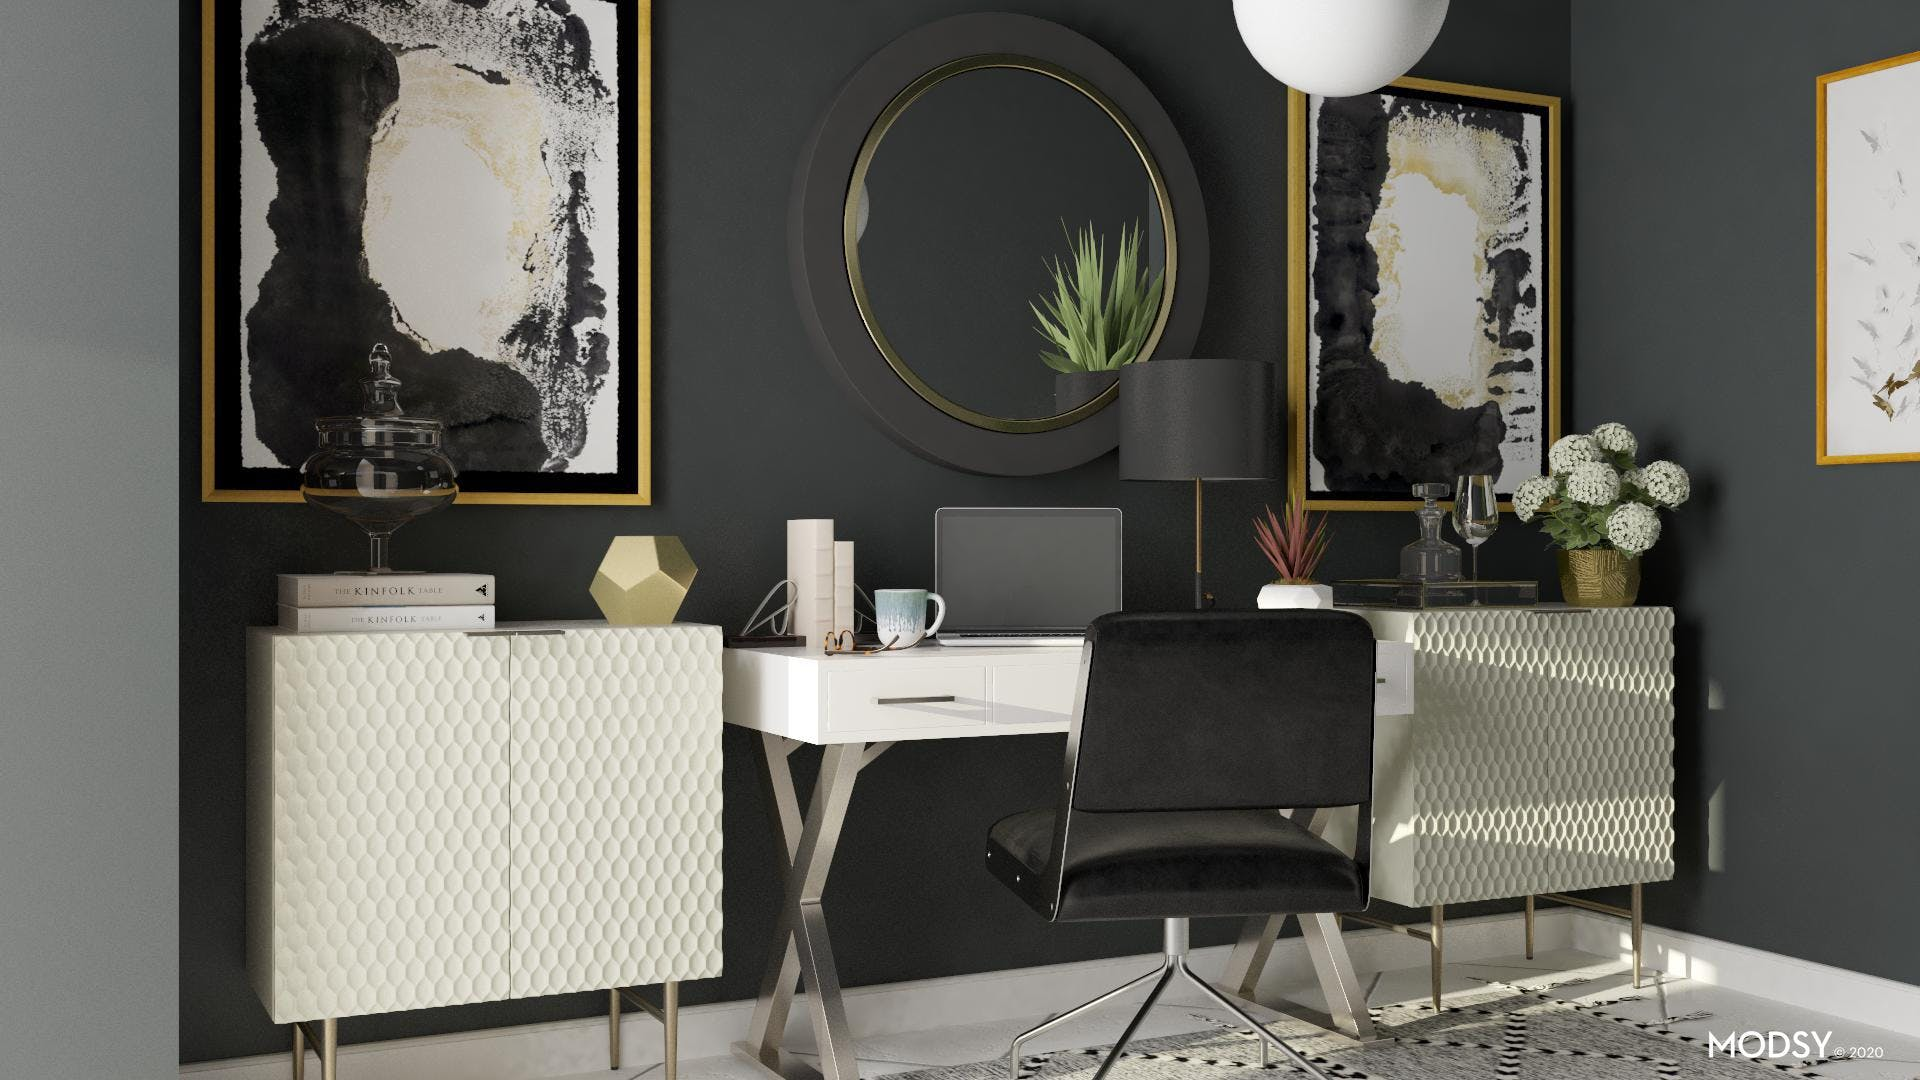 Black, White and Glam Go Together